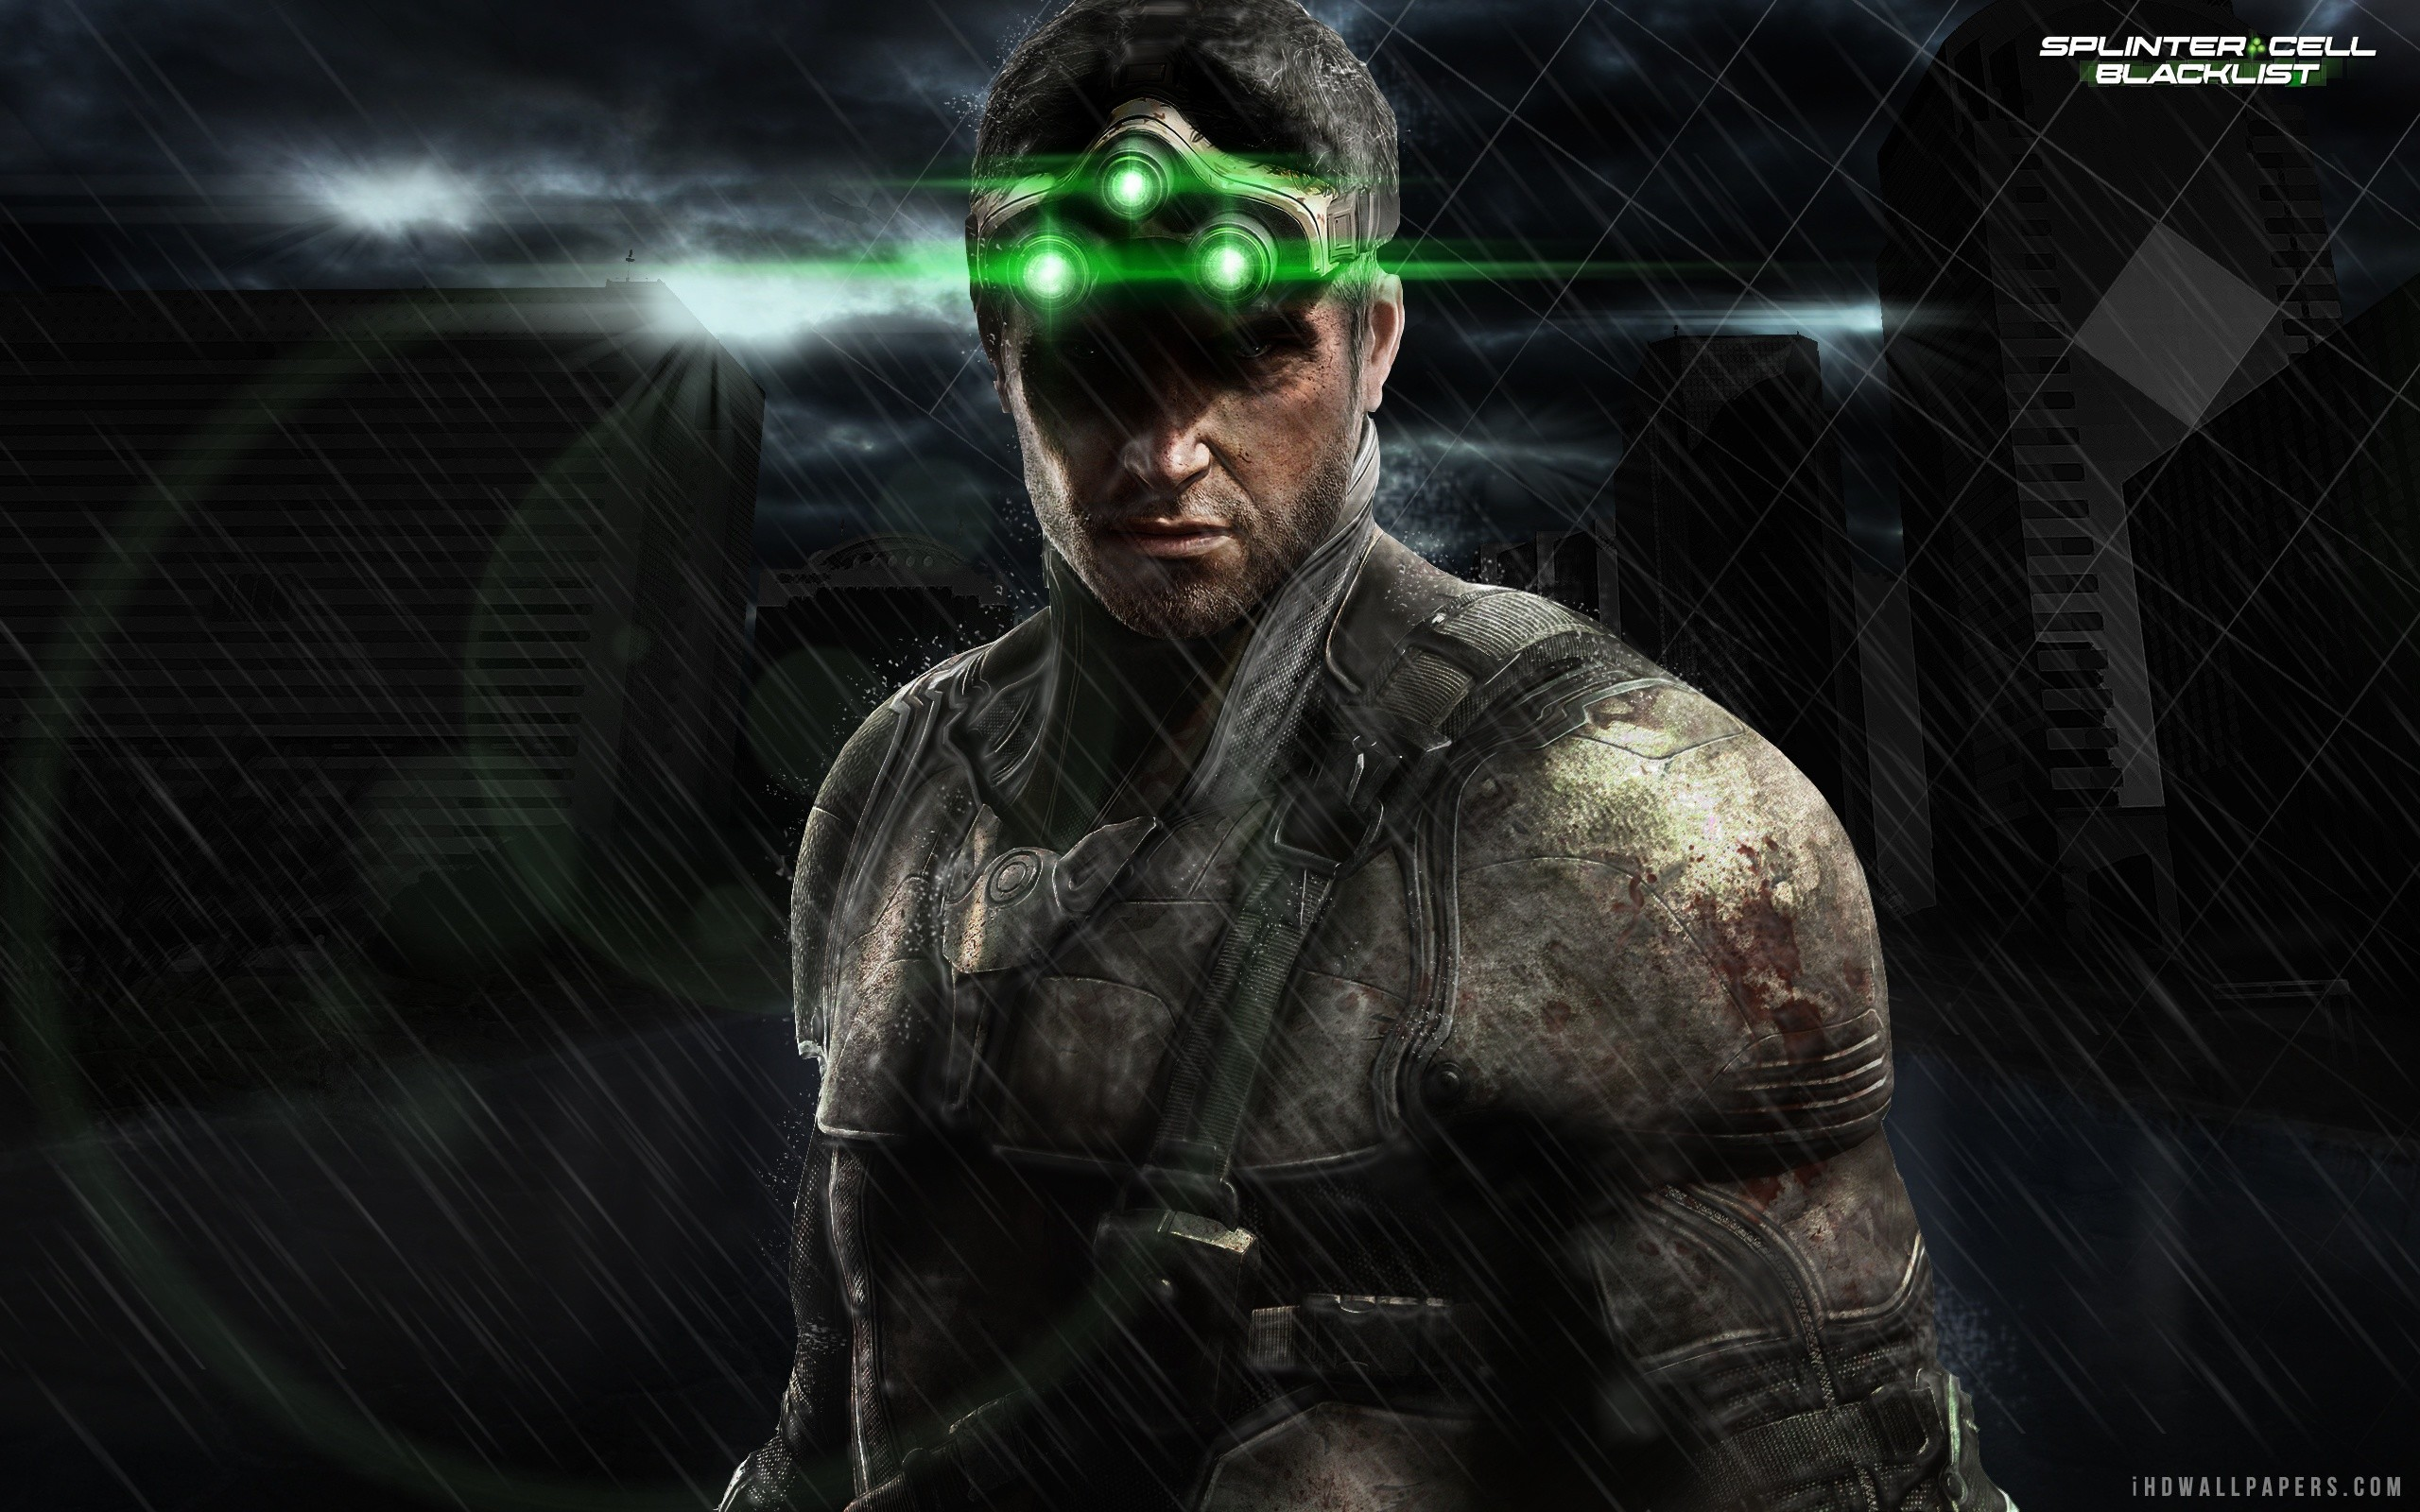 Splinter cell 1 wallpaper